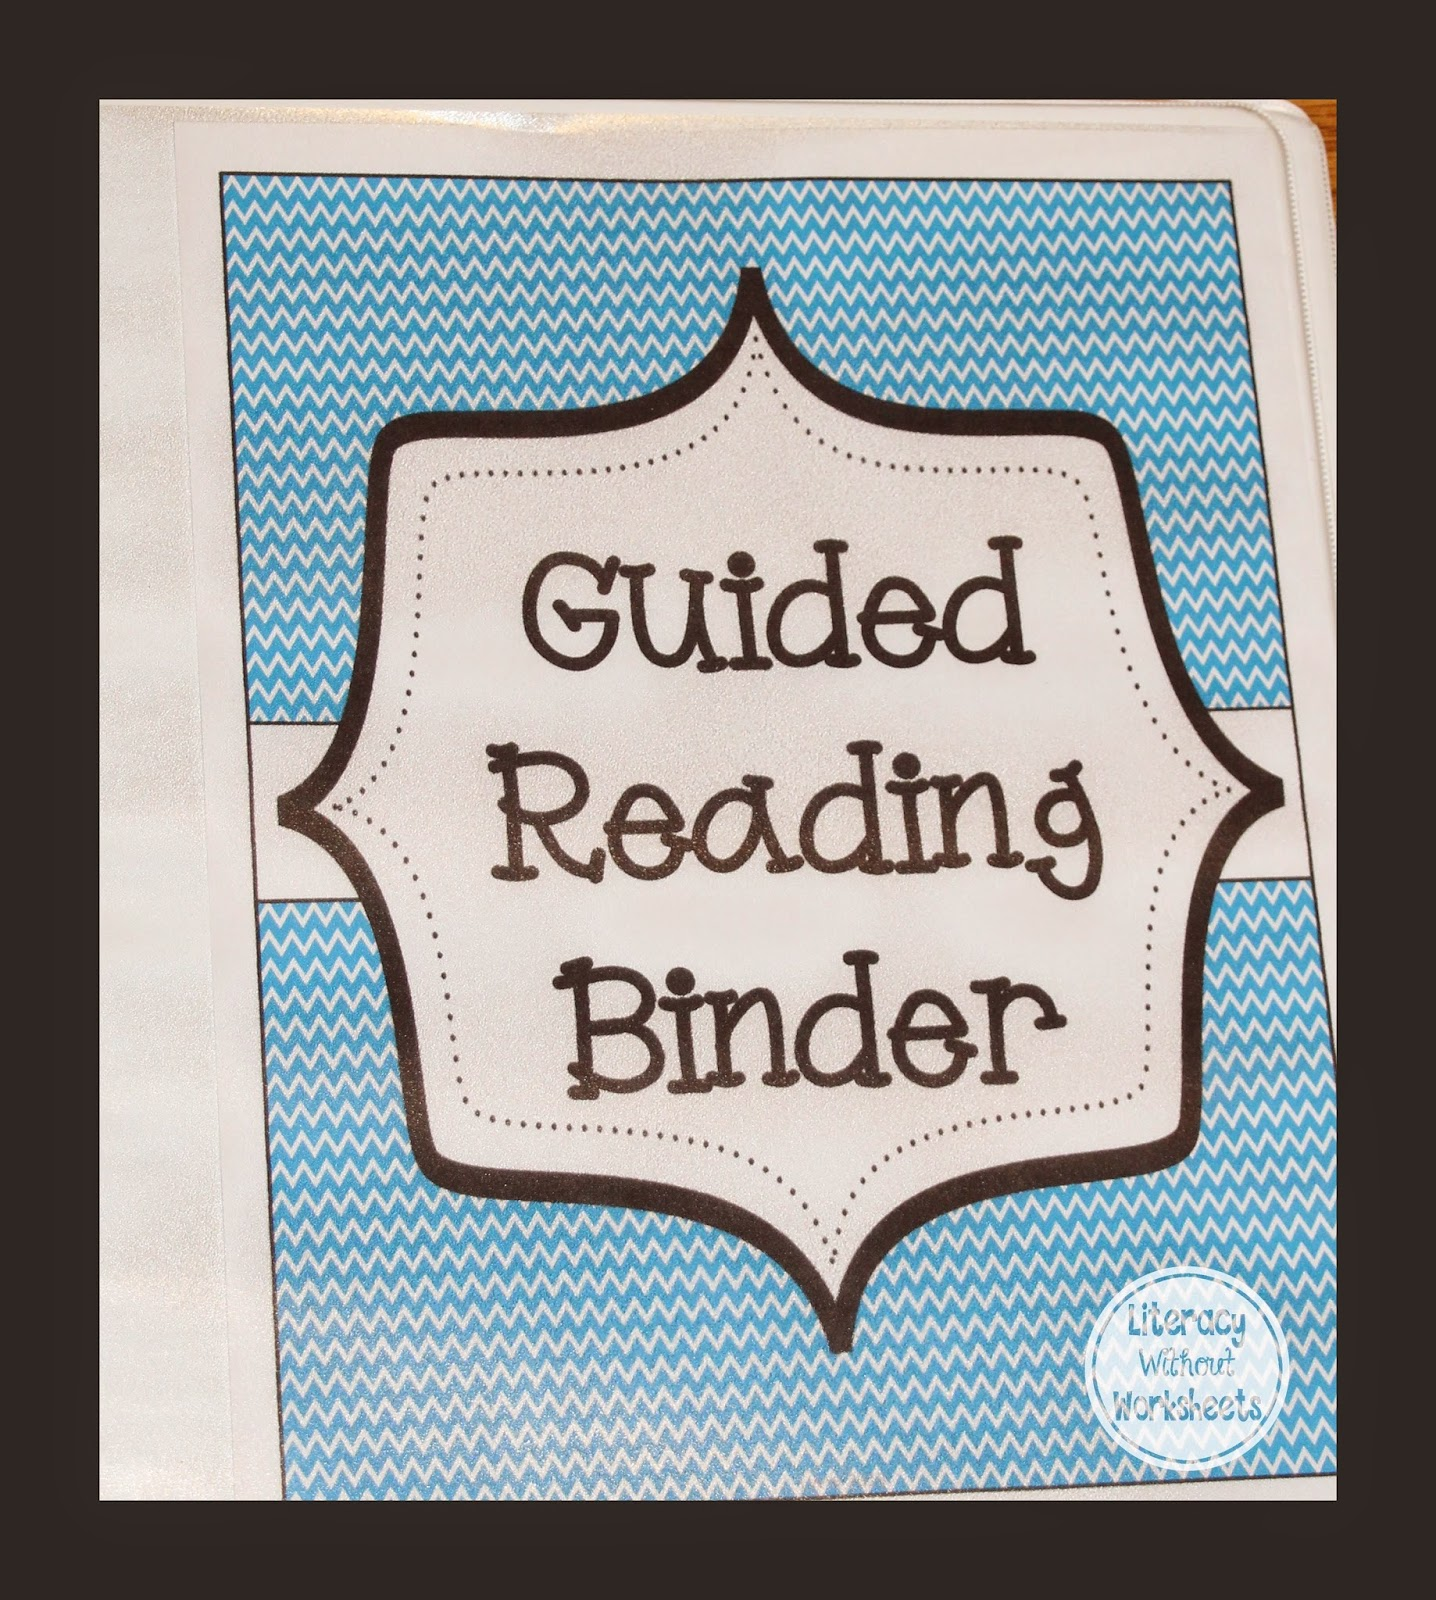 http://www.teacherspayteachers.com/Product/Guided-Organizational-Binder-for-Guided-Reading-and-Literacy-Workstation-494811